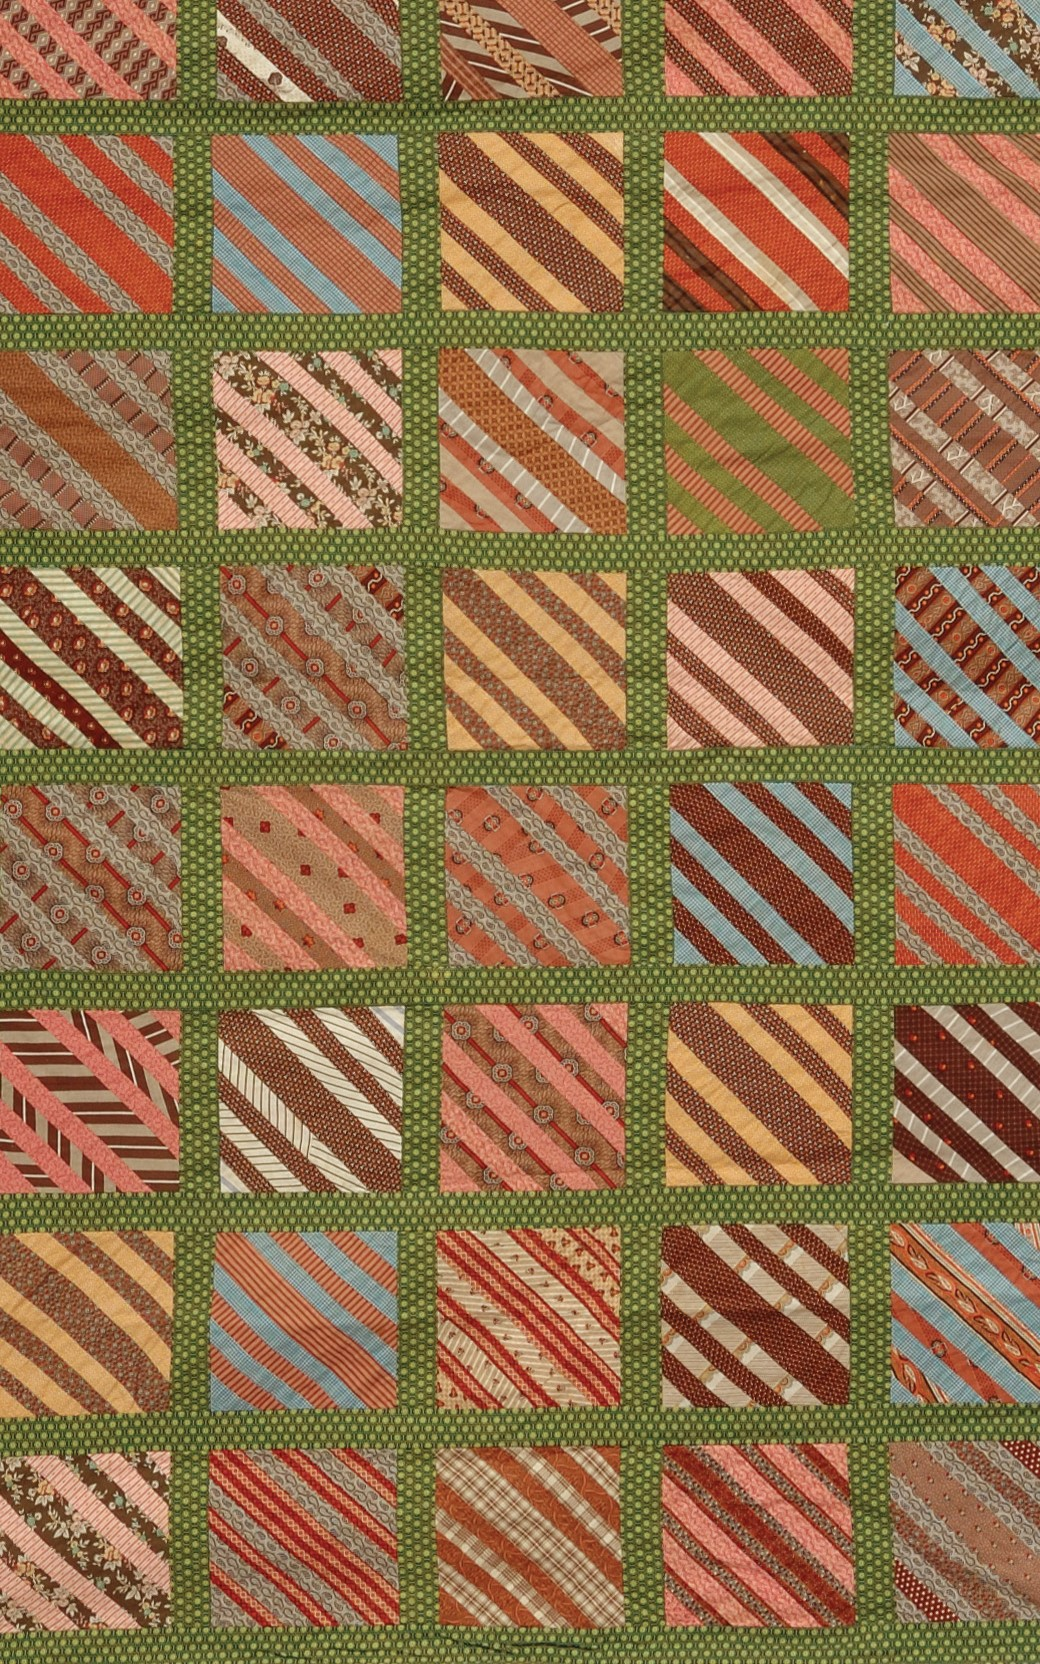 <h3>SQAURES AND DIAGONAL STRIPES</h3>